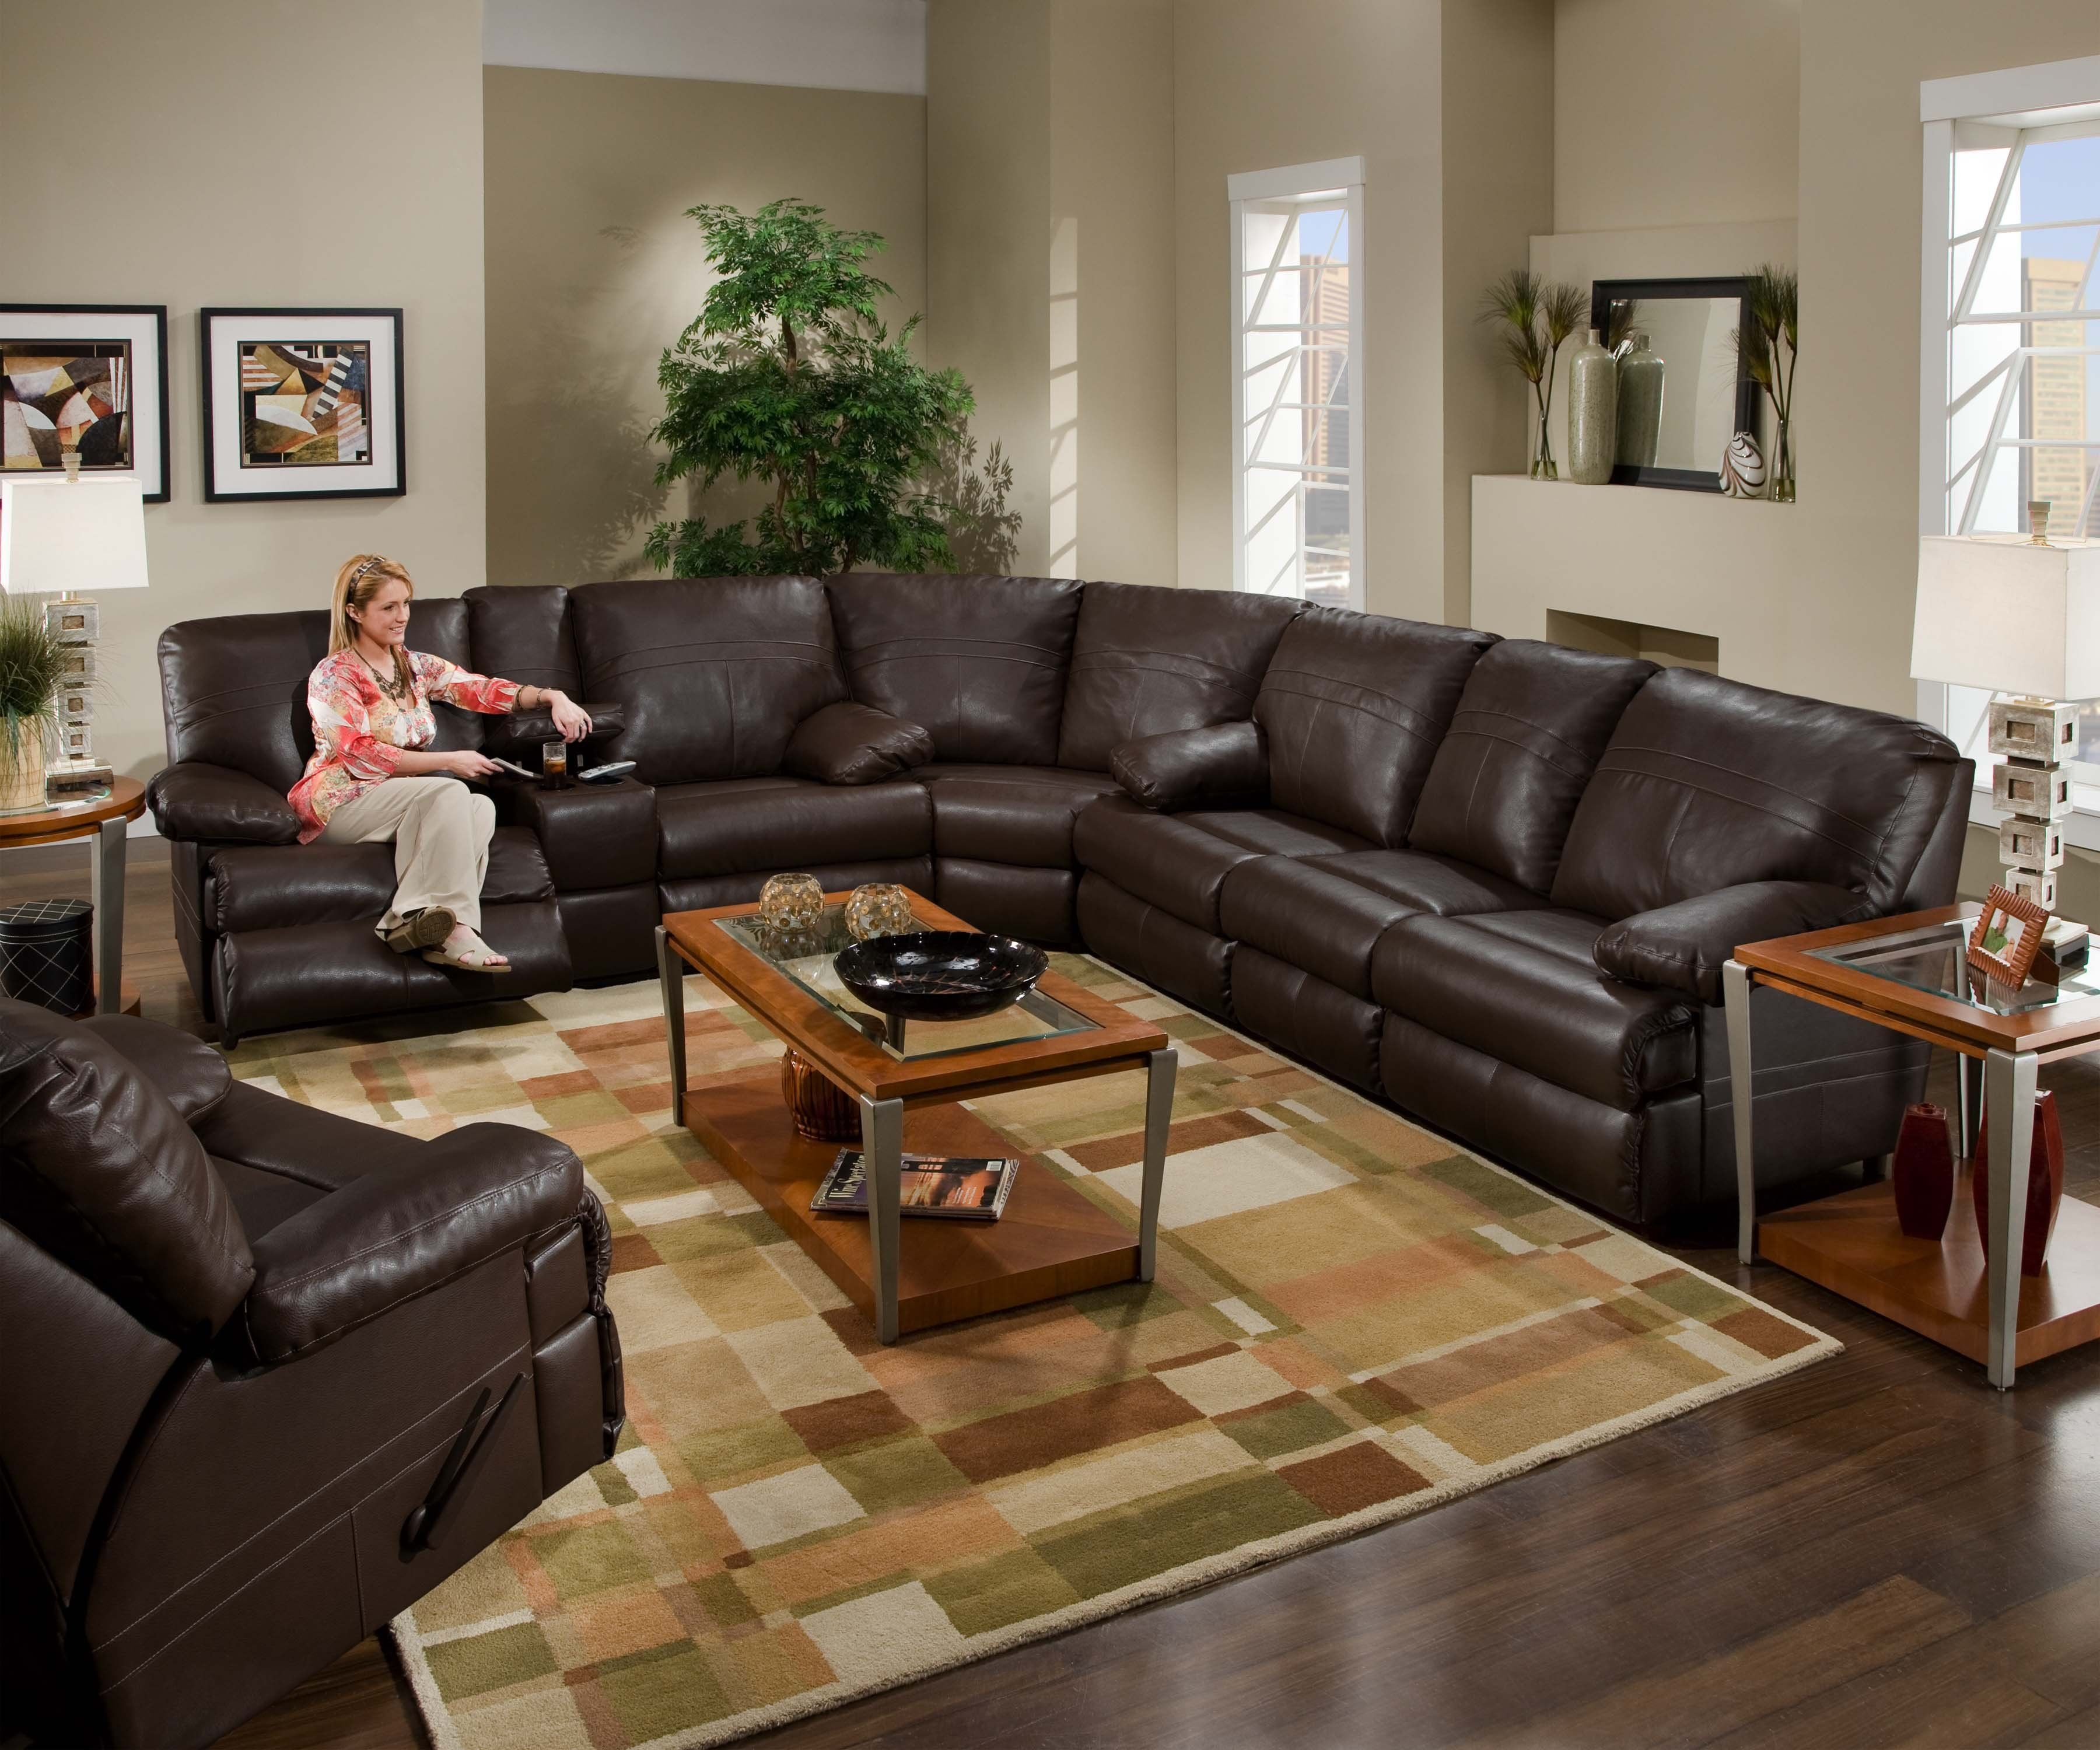 Surprising Sectional Leather Couch With Recliners We Have Very Similar Pdpeps Interior Chair Design Pdpepsorg